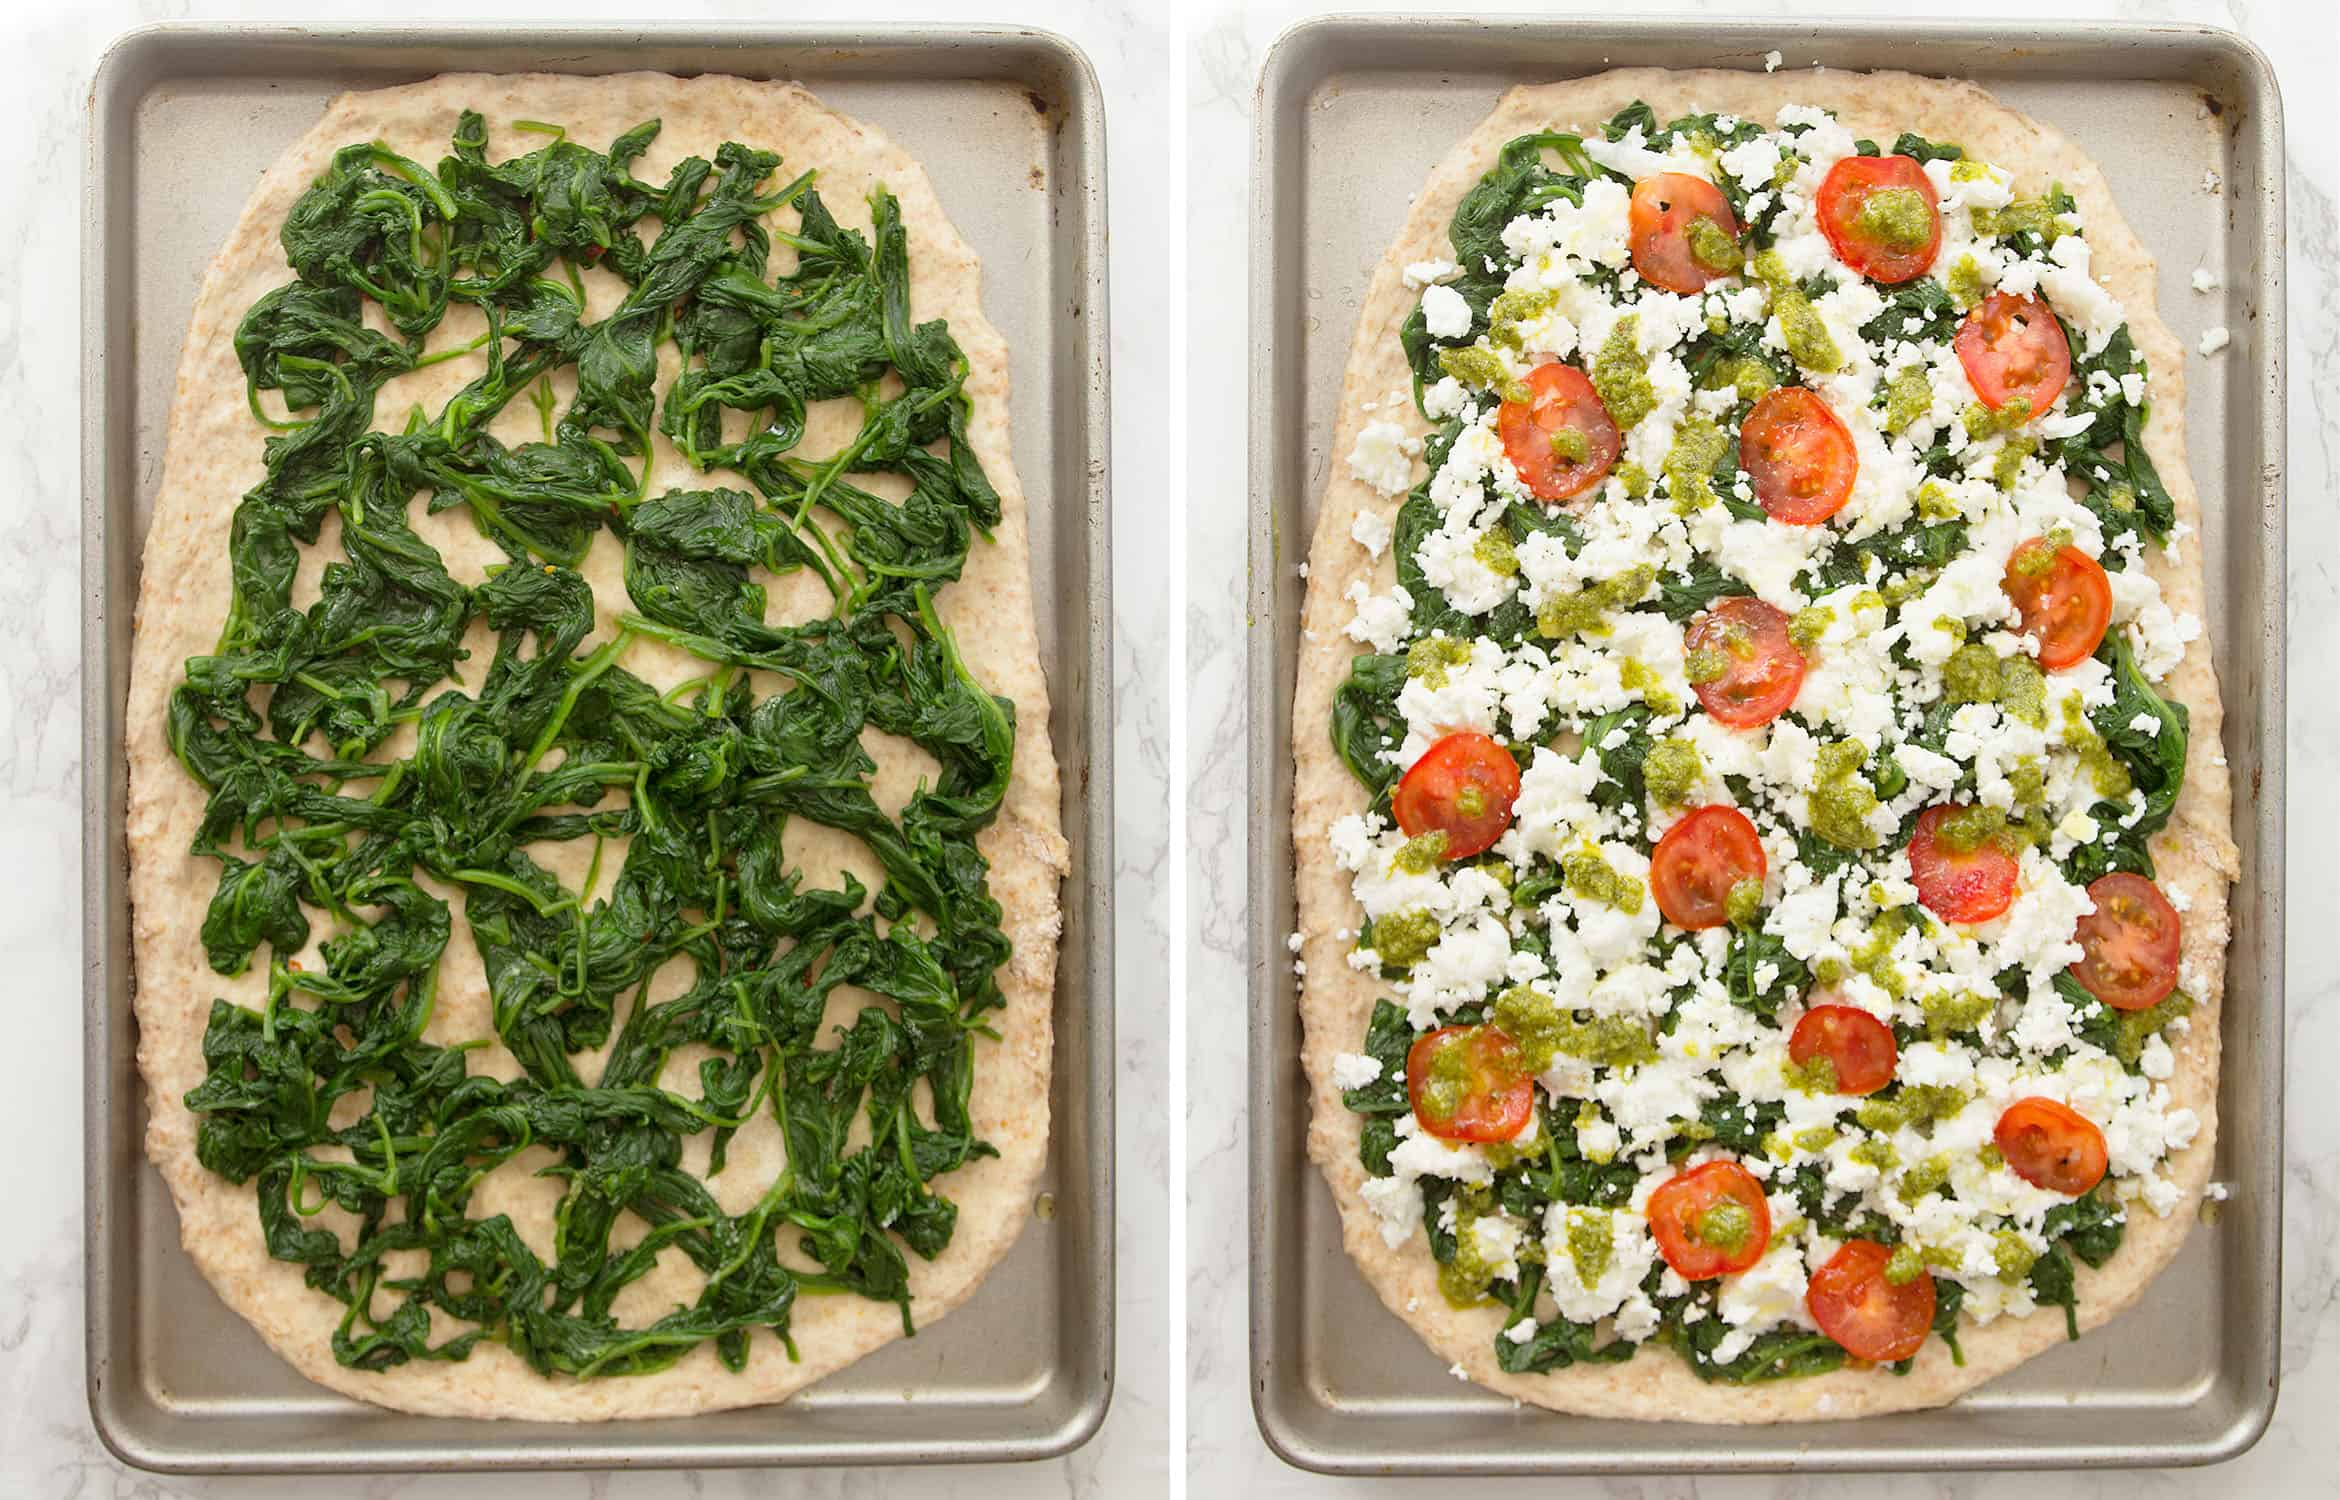 Top view of the spinach pizza with the topping of spinach, feta and tomatoes.